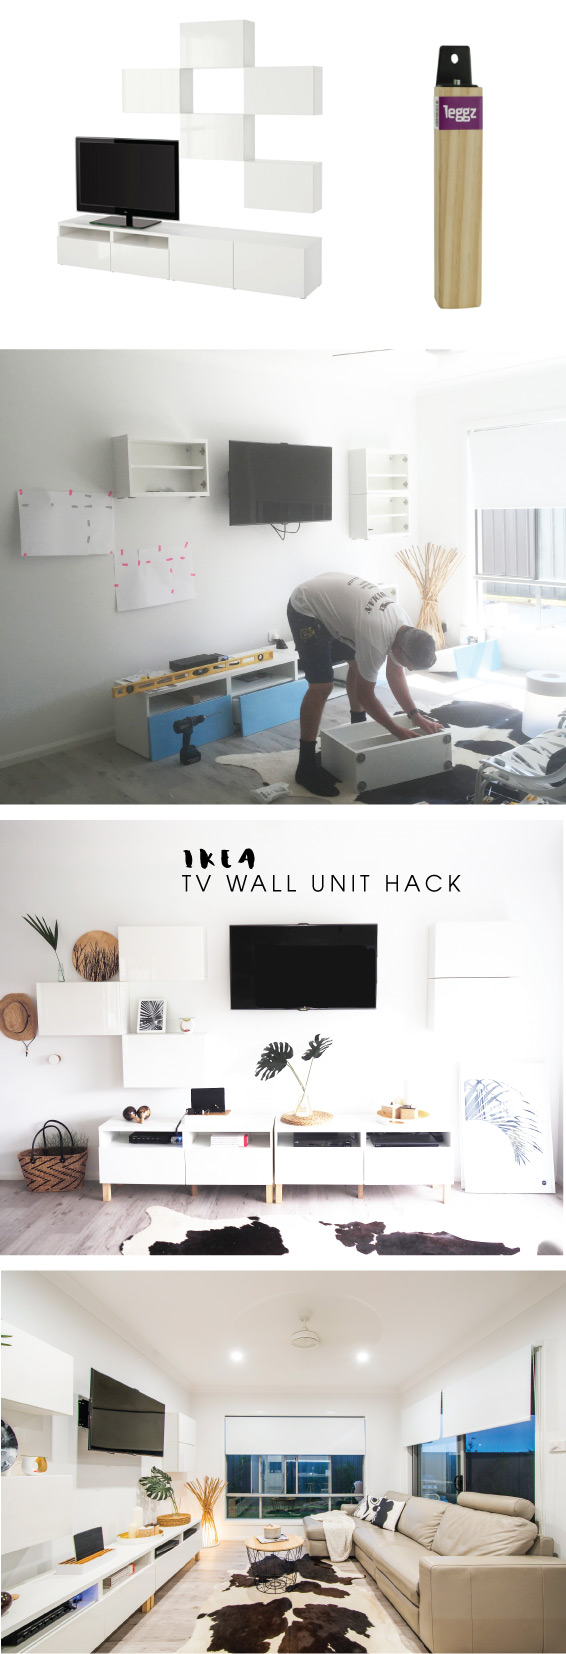 TOMFO-Ikea-tv-wall-unit